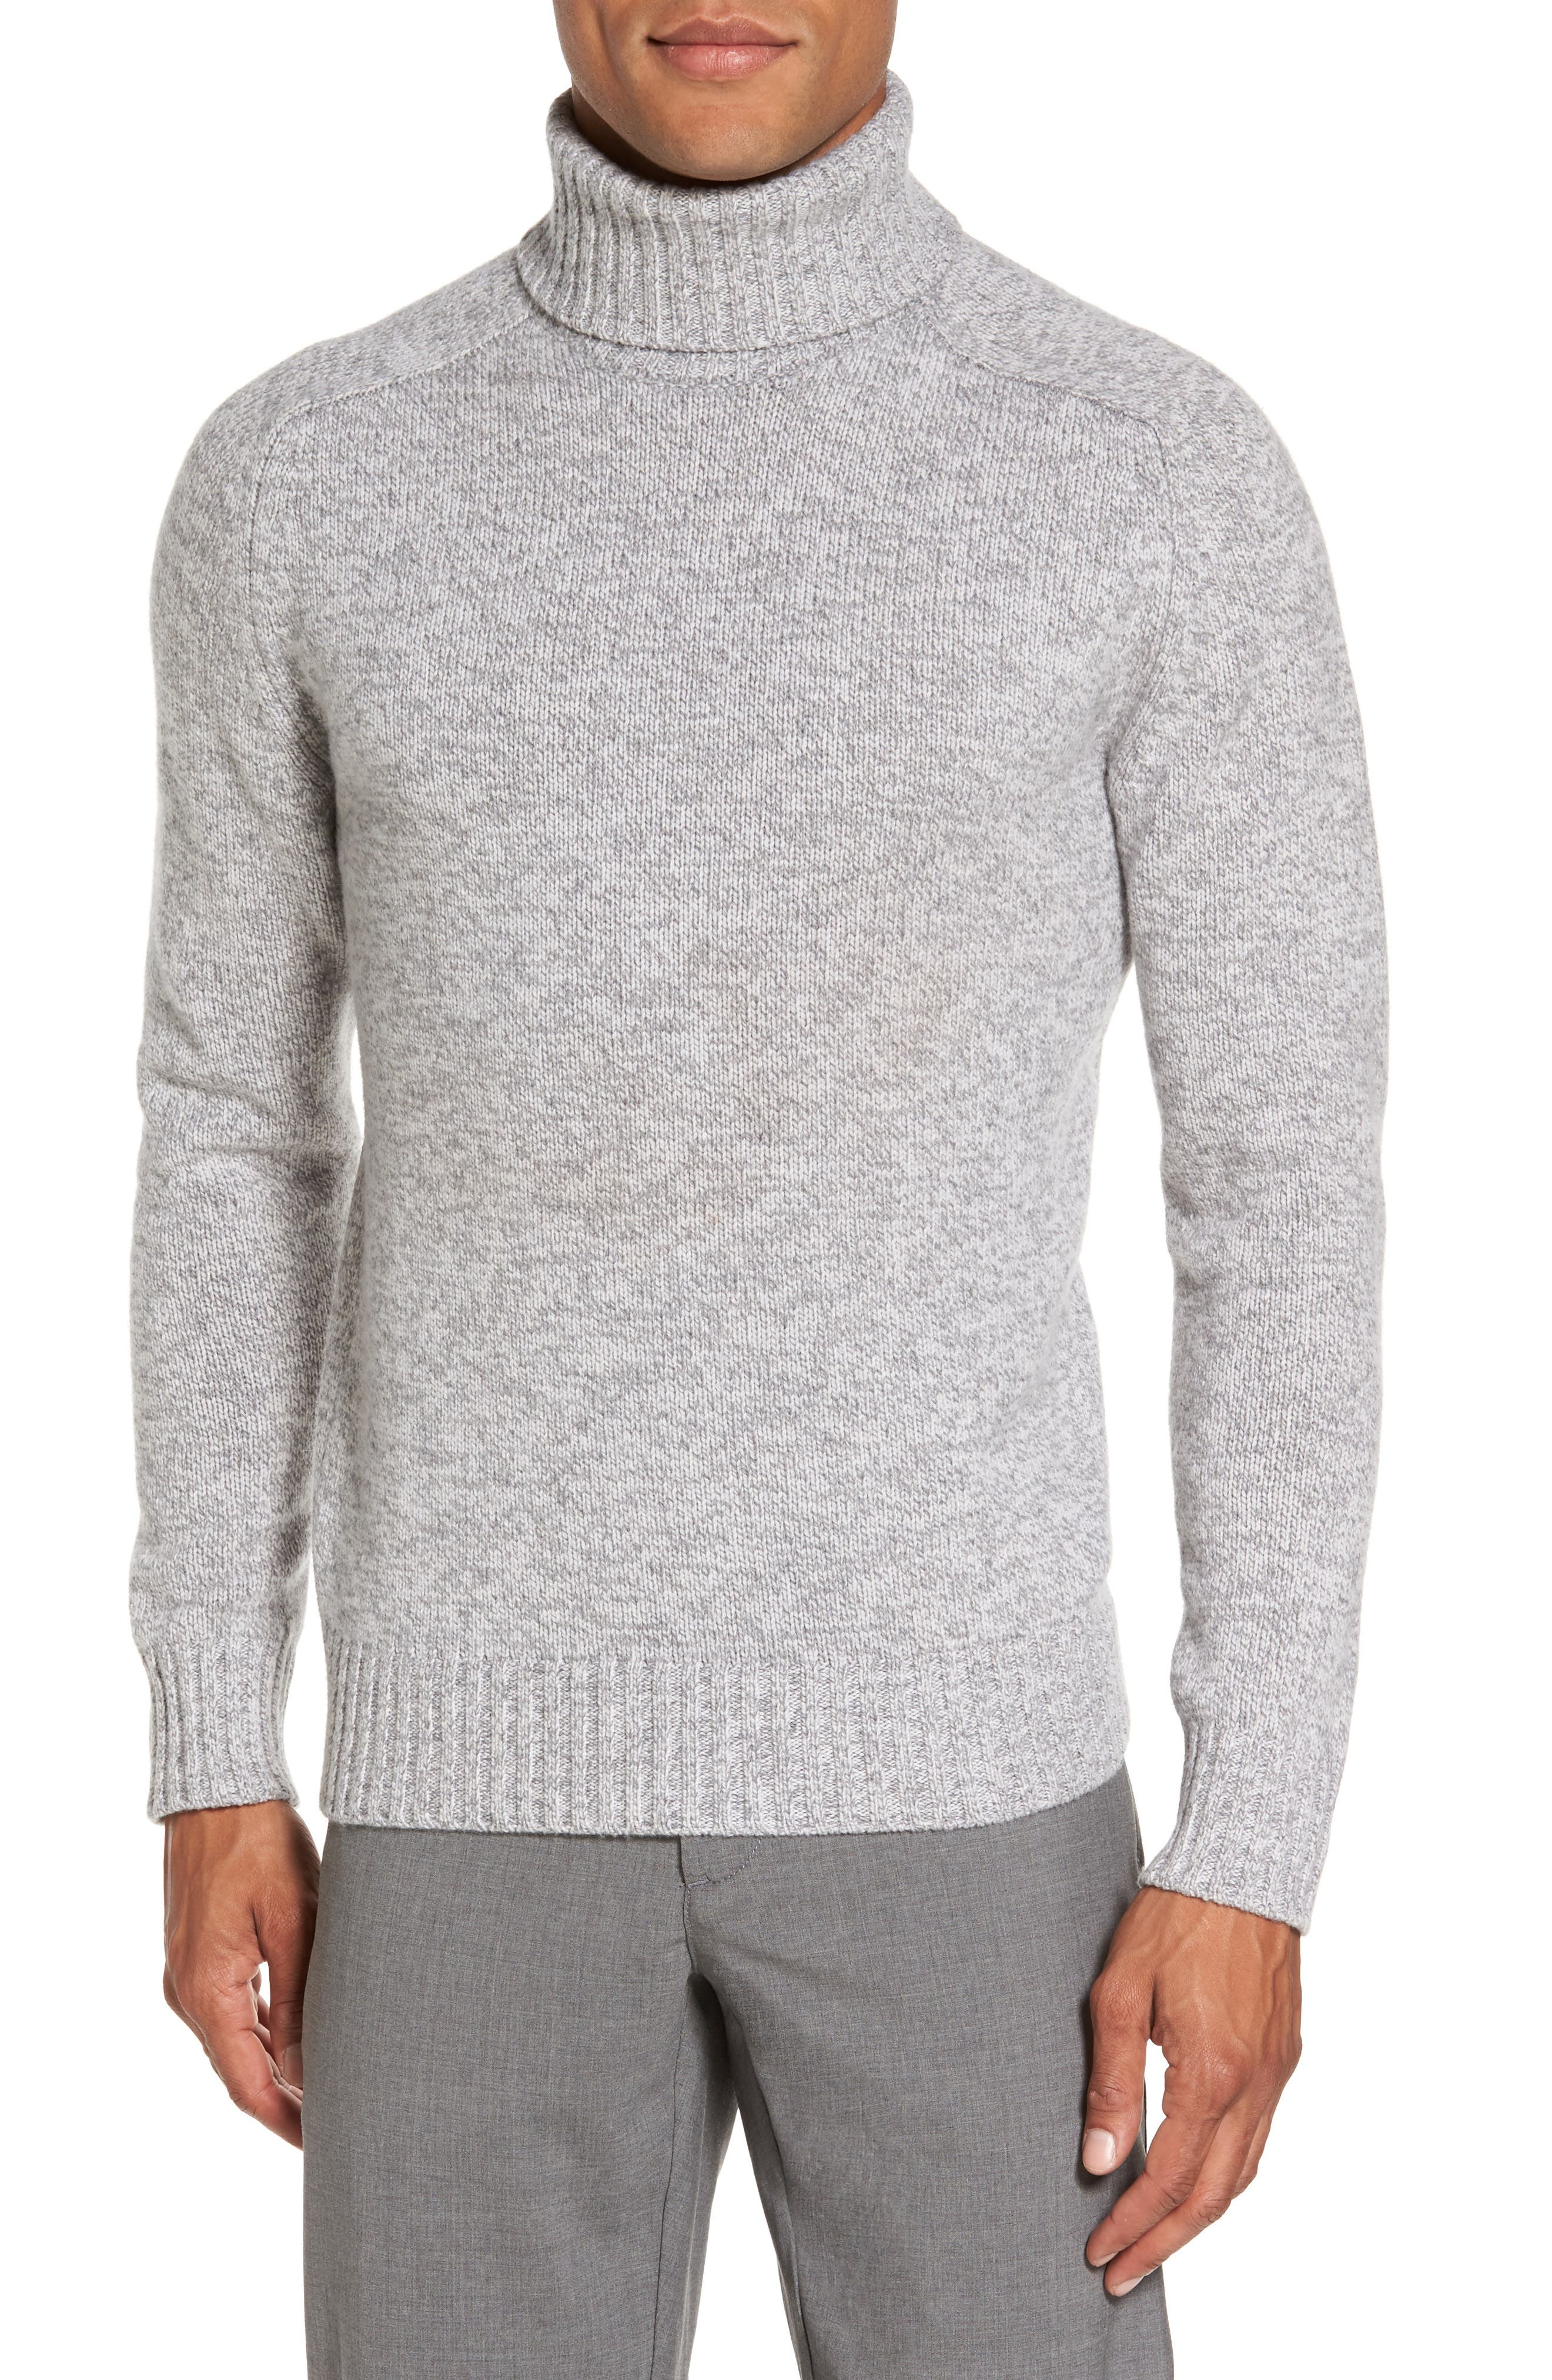 Marled Turtleneck Sweater,                             Main thumbnail 1, color,                             054